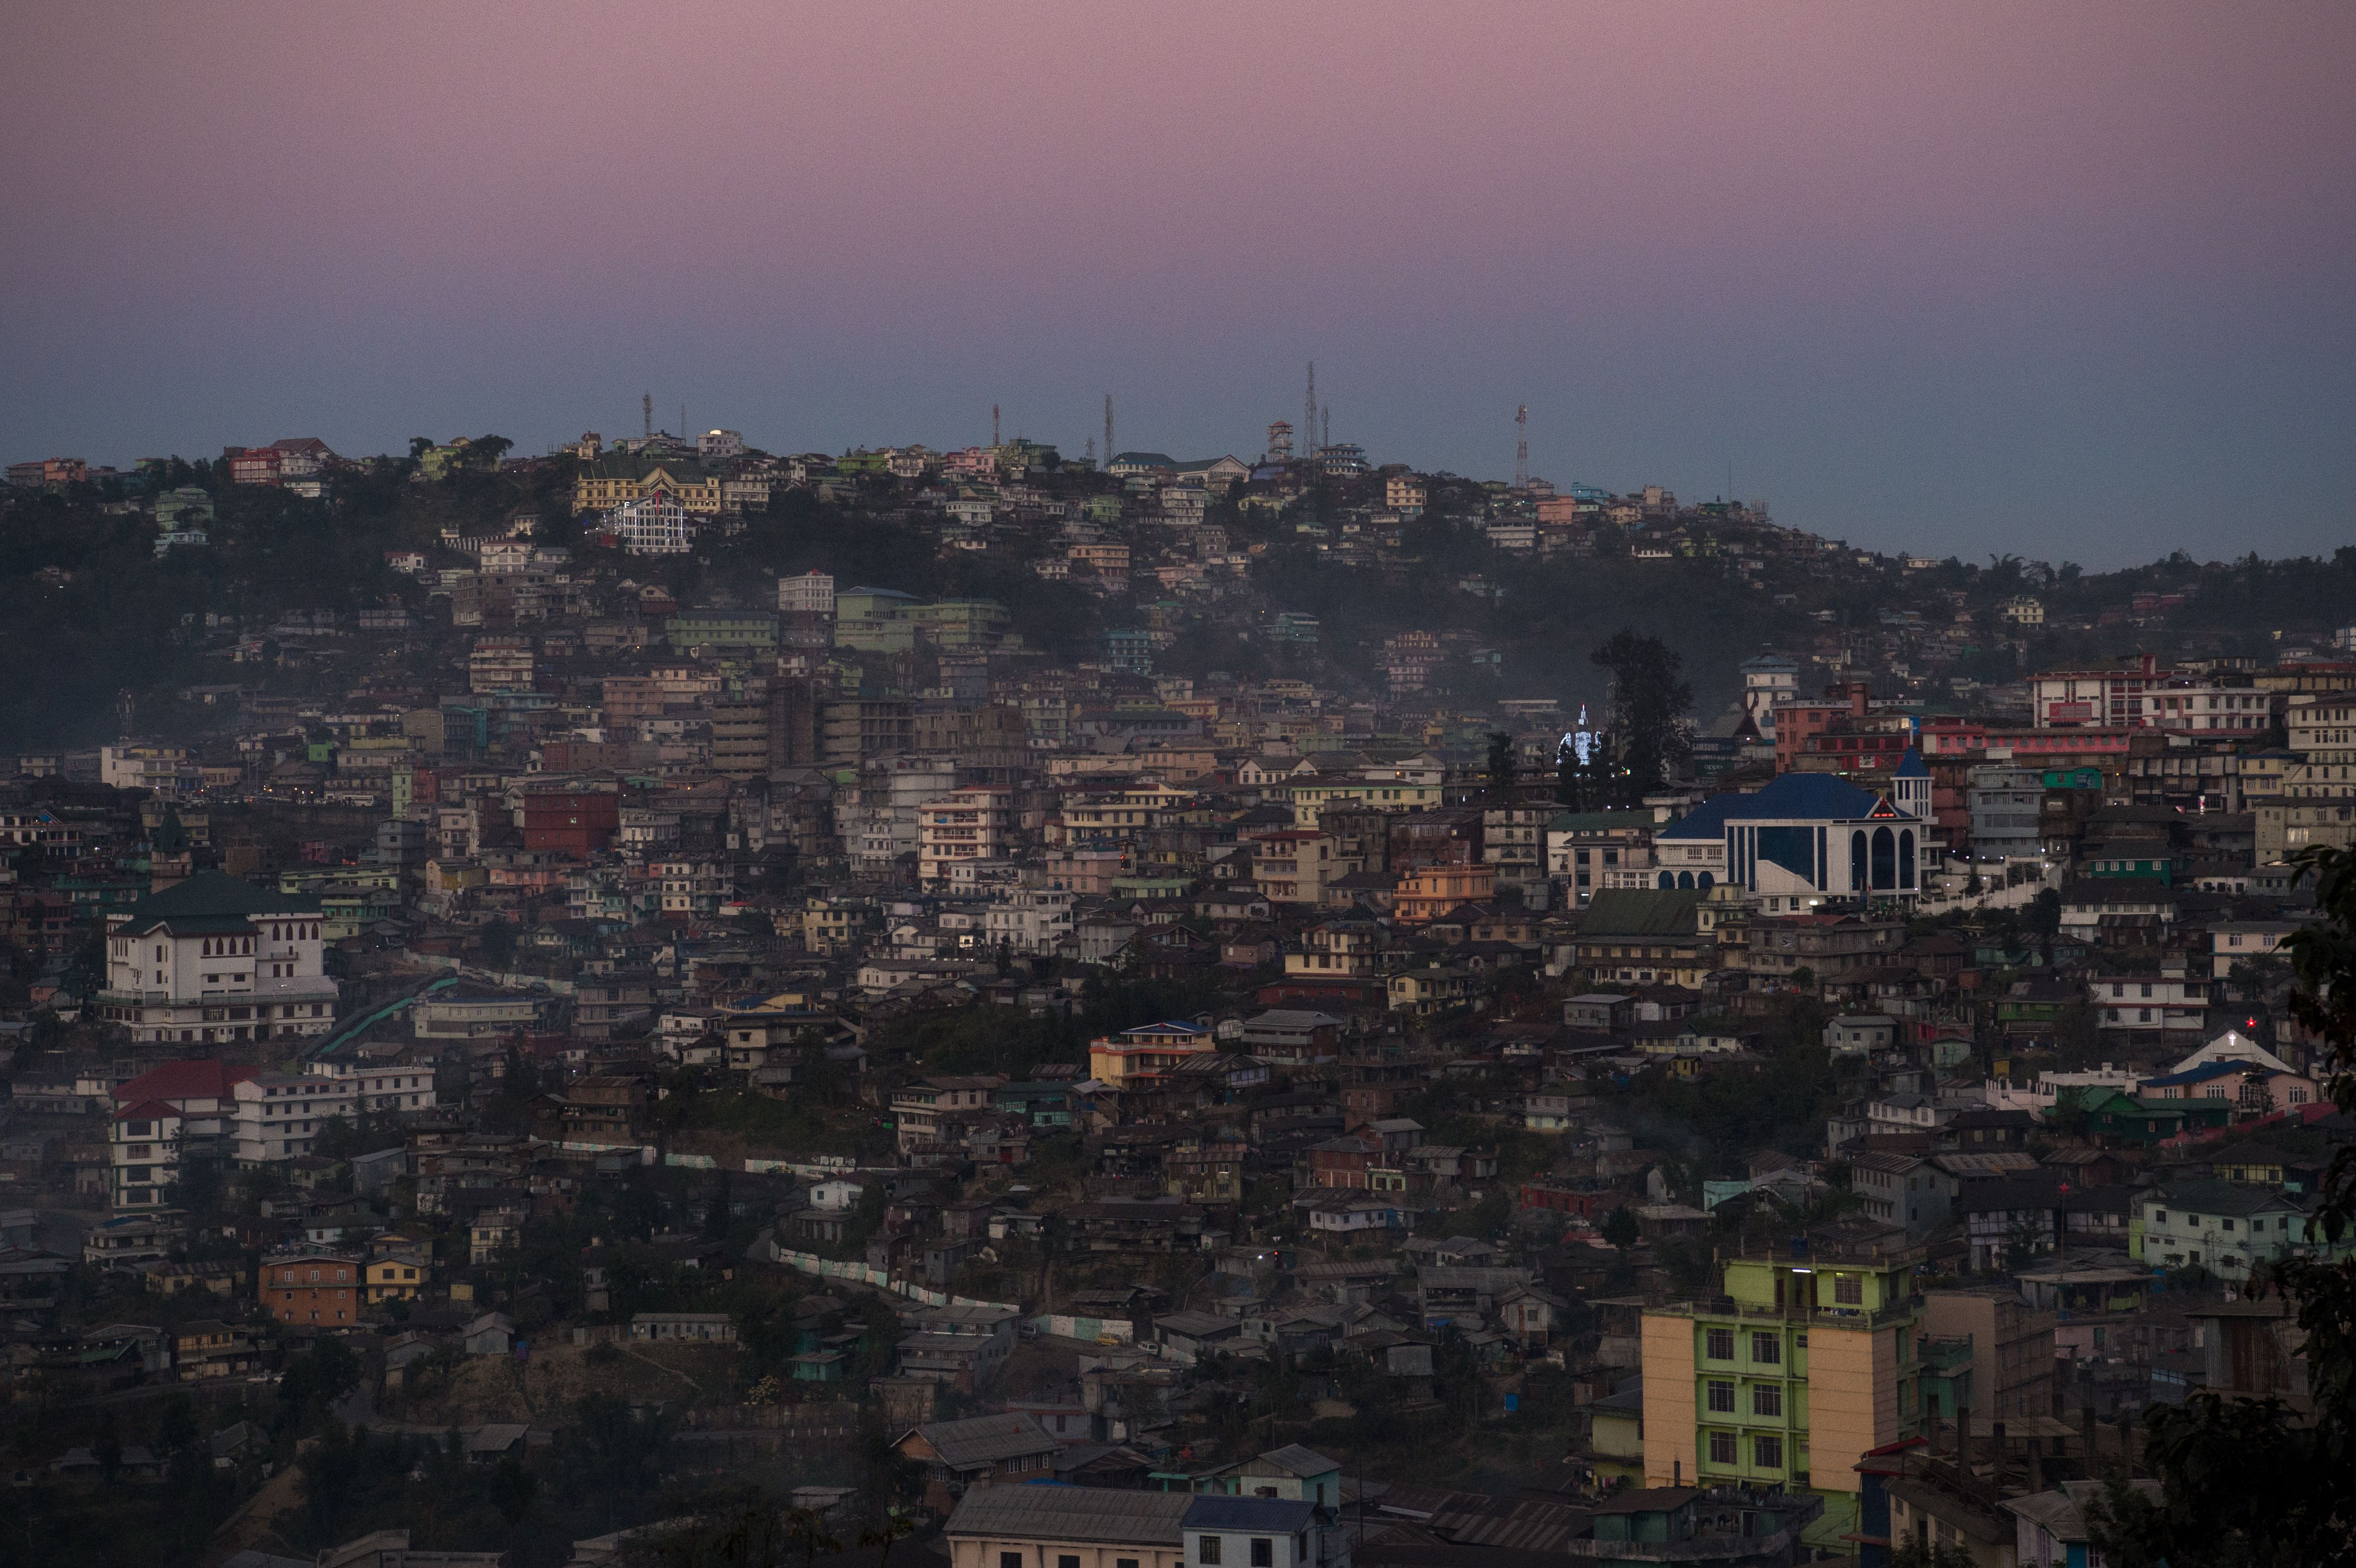 A view of Kohima, capital of the northeastern Indian state of Nagaland, on Dec. 8, 2016